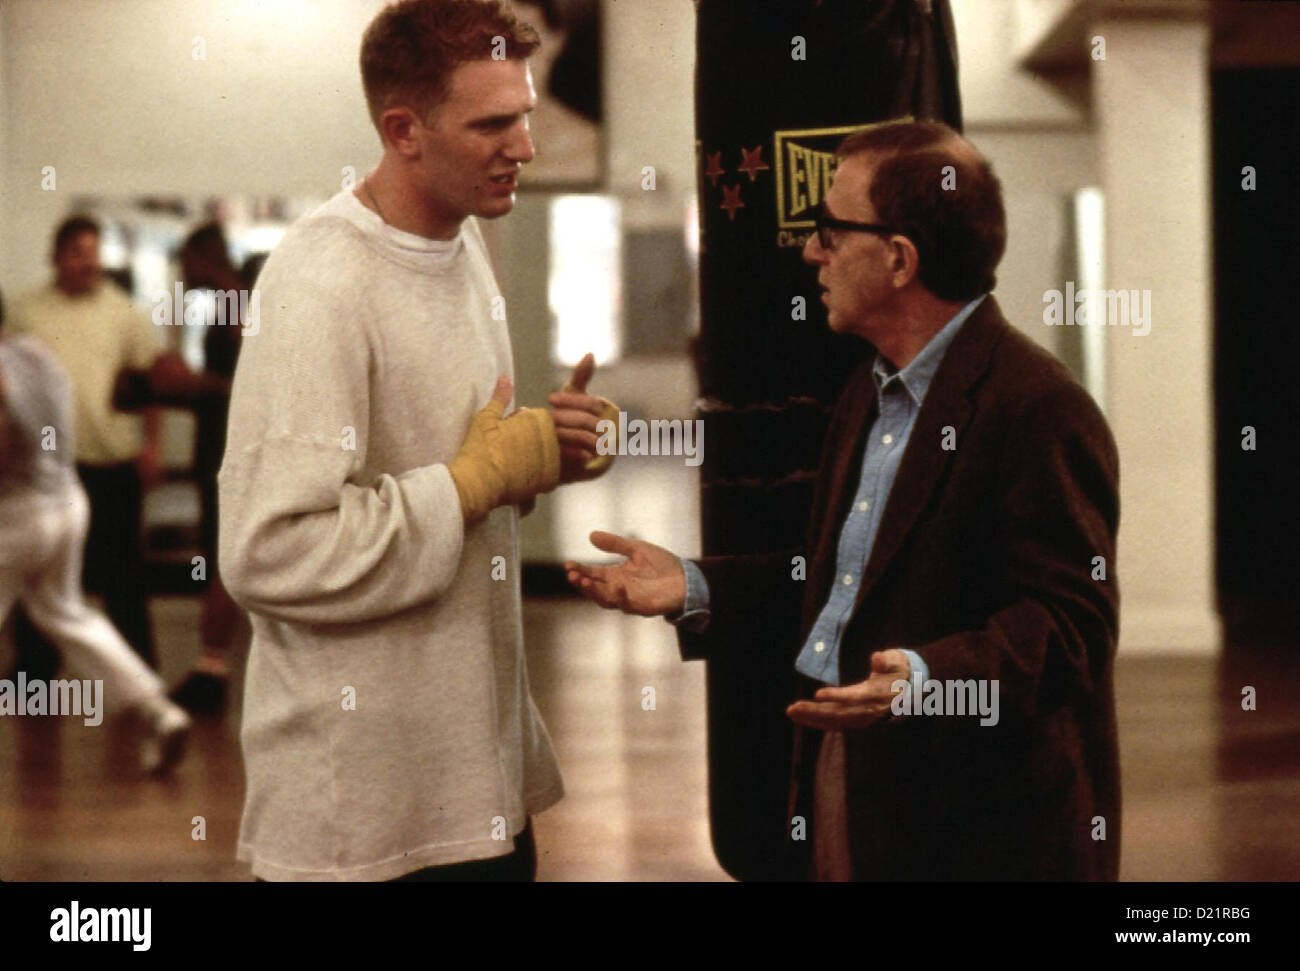 Geliebte Aphrodite   Mighty Aphrodite   Kevin (Michael Rapaport), Lenny (Woody Allen) *** Local Caption *** 1995 - Stock Image